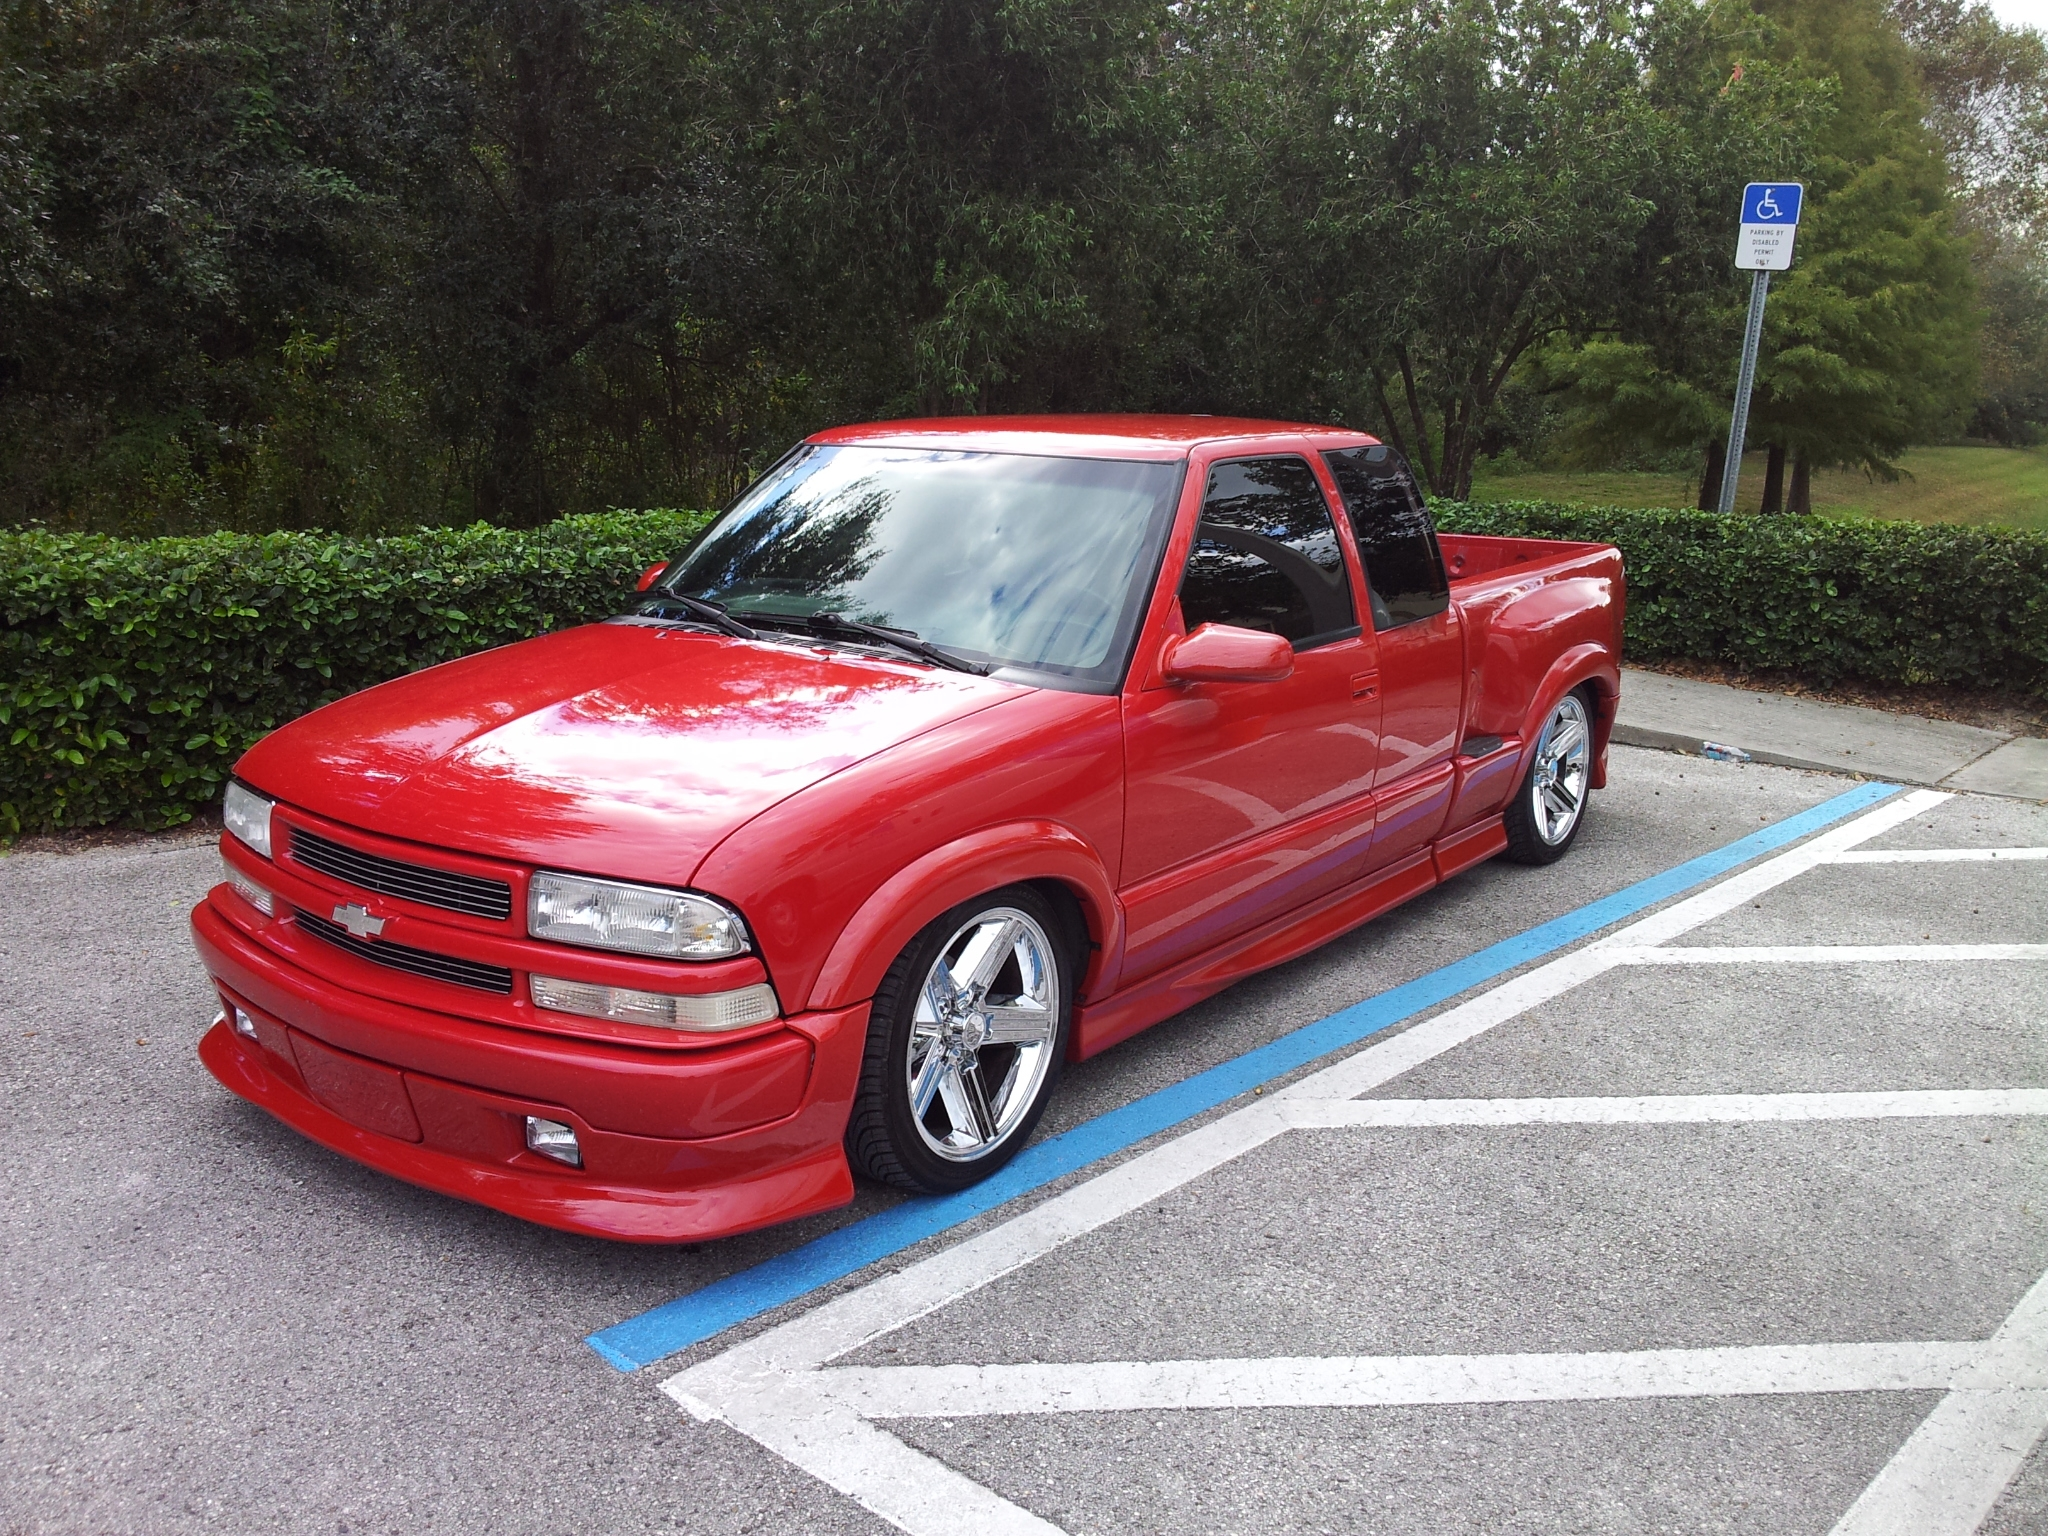 koeberle04 2002 chevrolet s10 extended cab 39 s photo gallery at cardomain. Black Bedroom Furniture Sets. Home Design Ideas